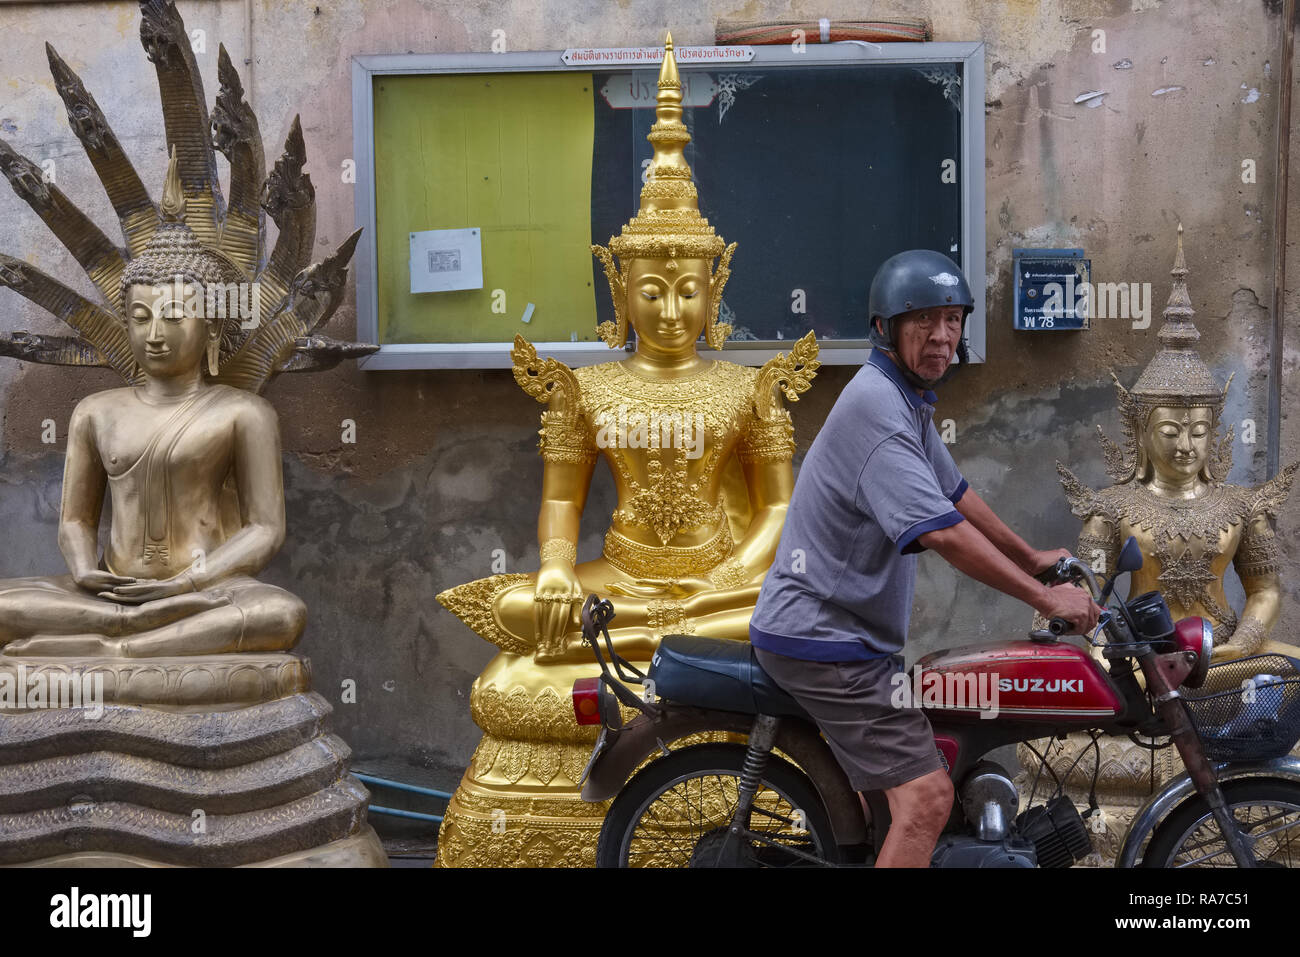 A man stops his motorbike in front of Buddha statue outside a factory for Buddha statues and religious objects, Bamrung Muang Rd., Bangkok, Thailand - Stock Image